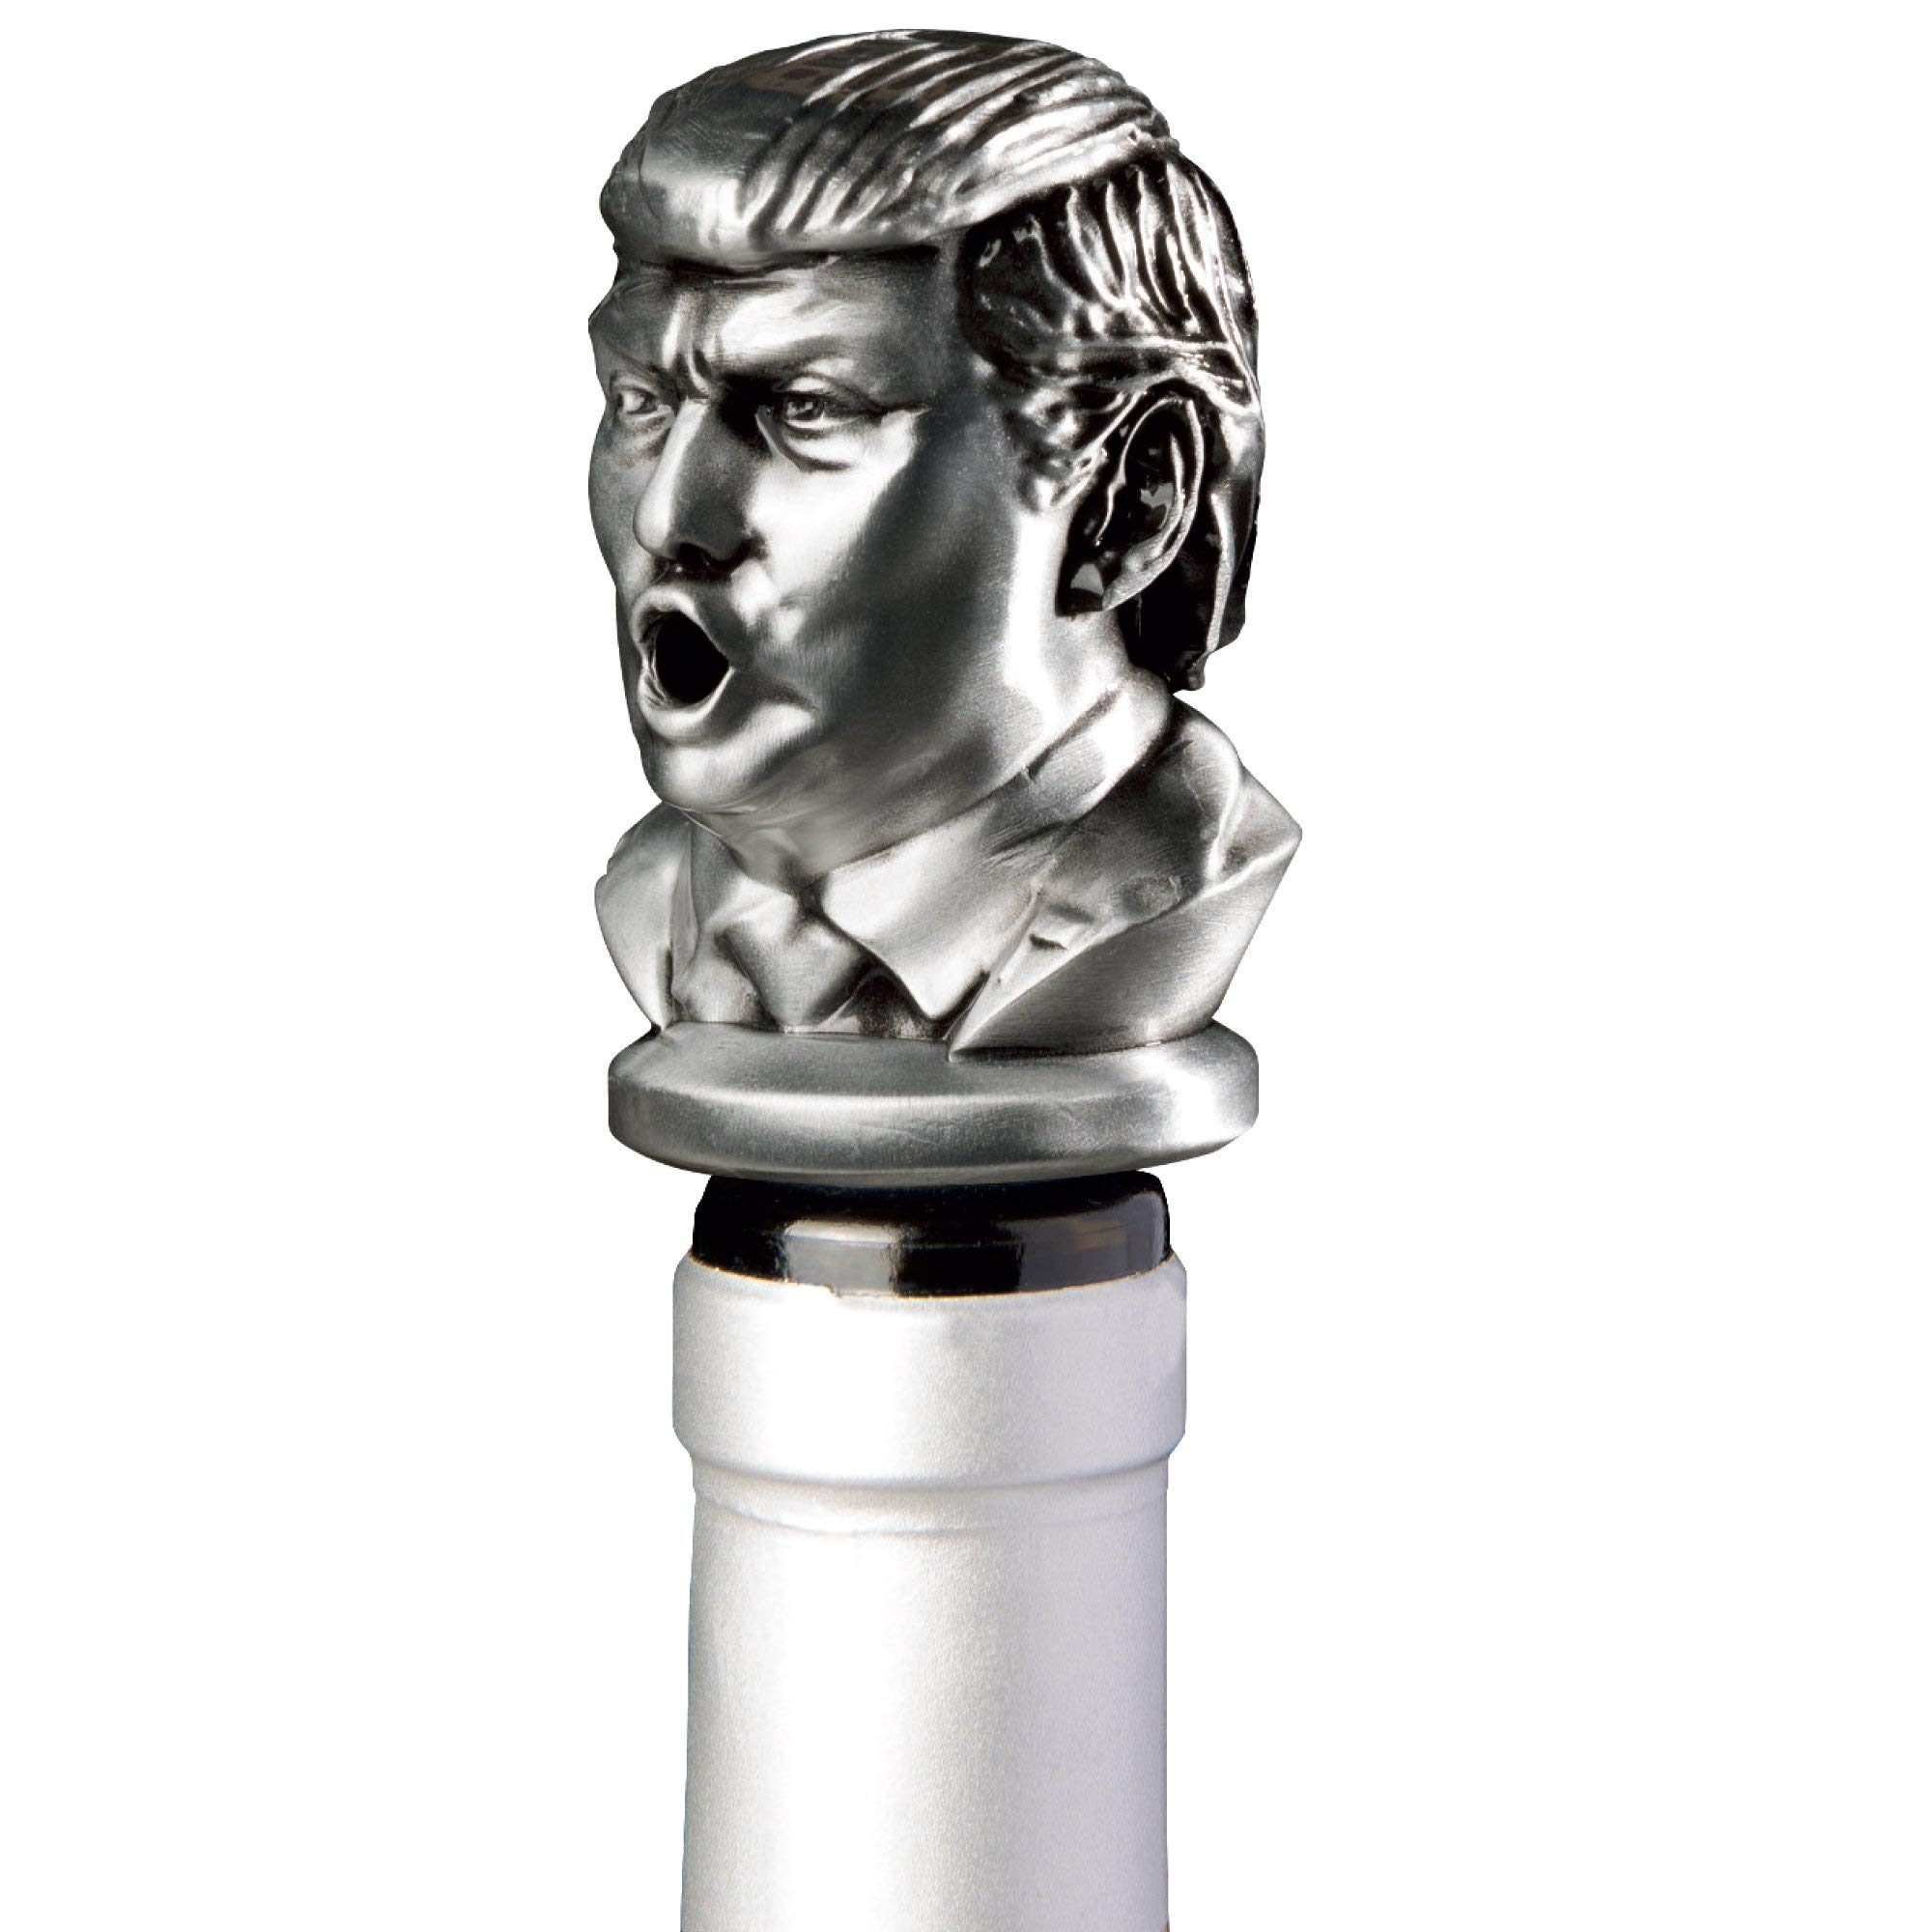 Stainless Steel Trump Wine Aerator Pourer - Deluxe Decanter Spout for Robust Red and White Wine - Pour Amore Bottle Pourer/Stopper & Air Diffuser by Chris's Stuff by Chris's Stuff